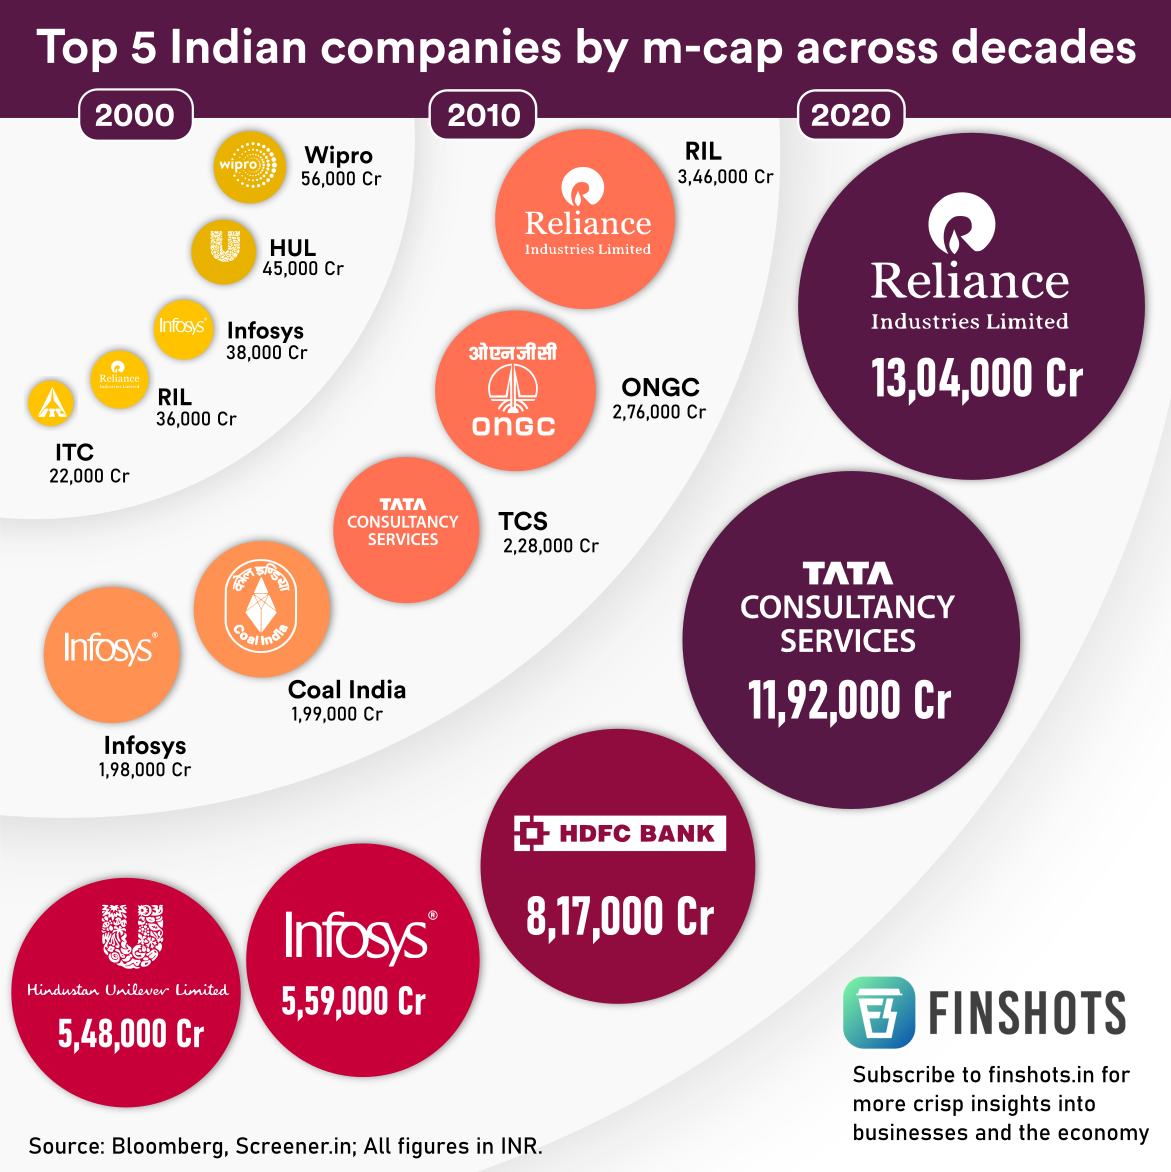 Top 5 Indian companies by market-cap across decades